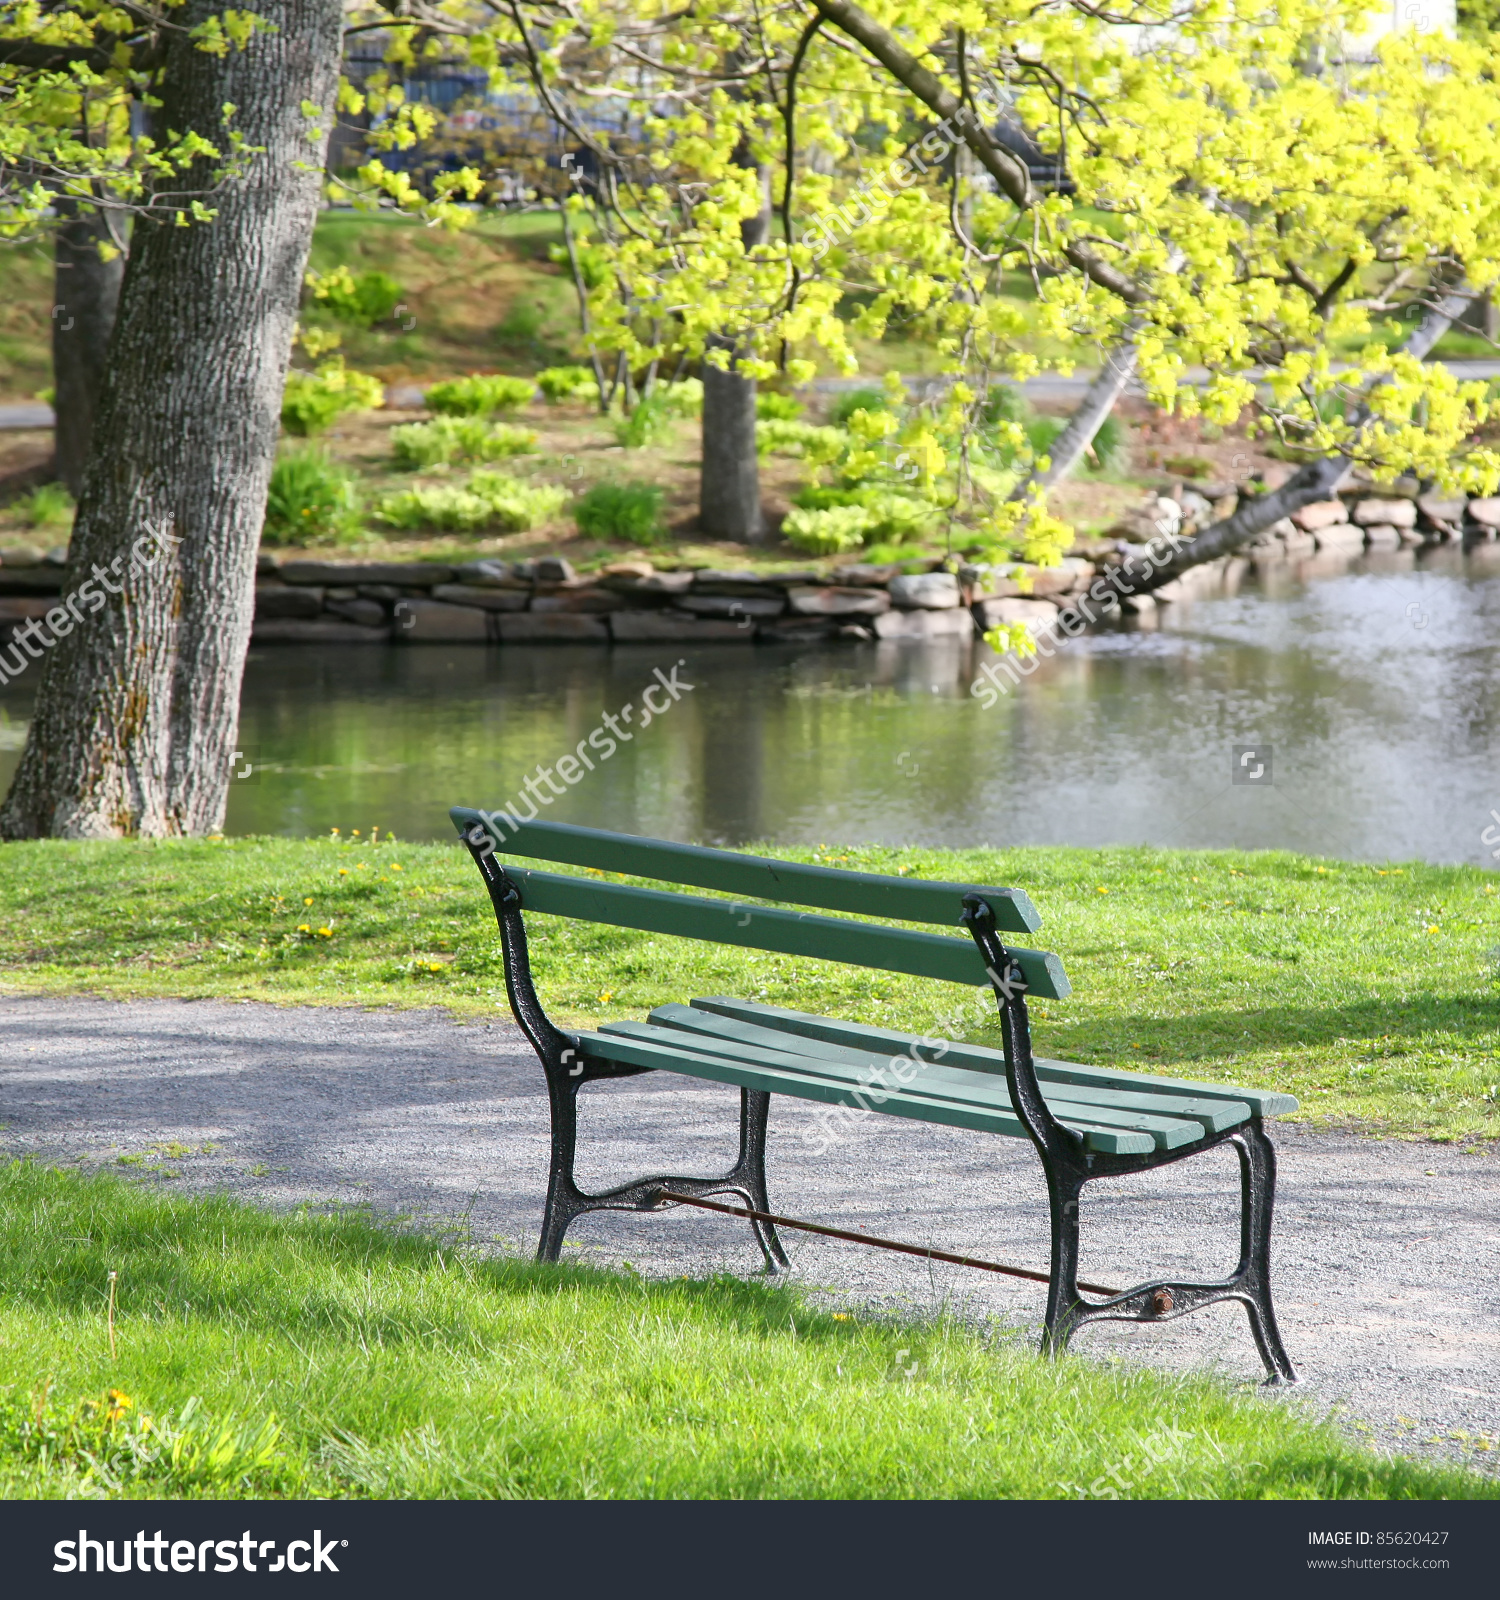 Empty Wooden Park Bench Overlooking Lake Stock Photo 85620427.